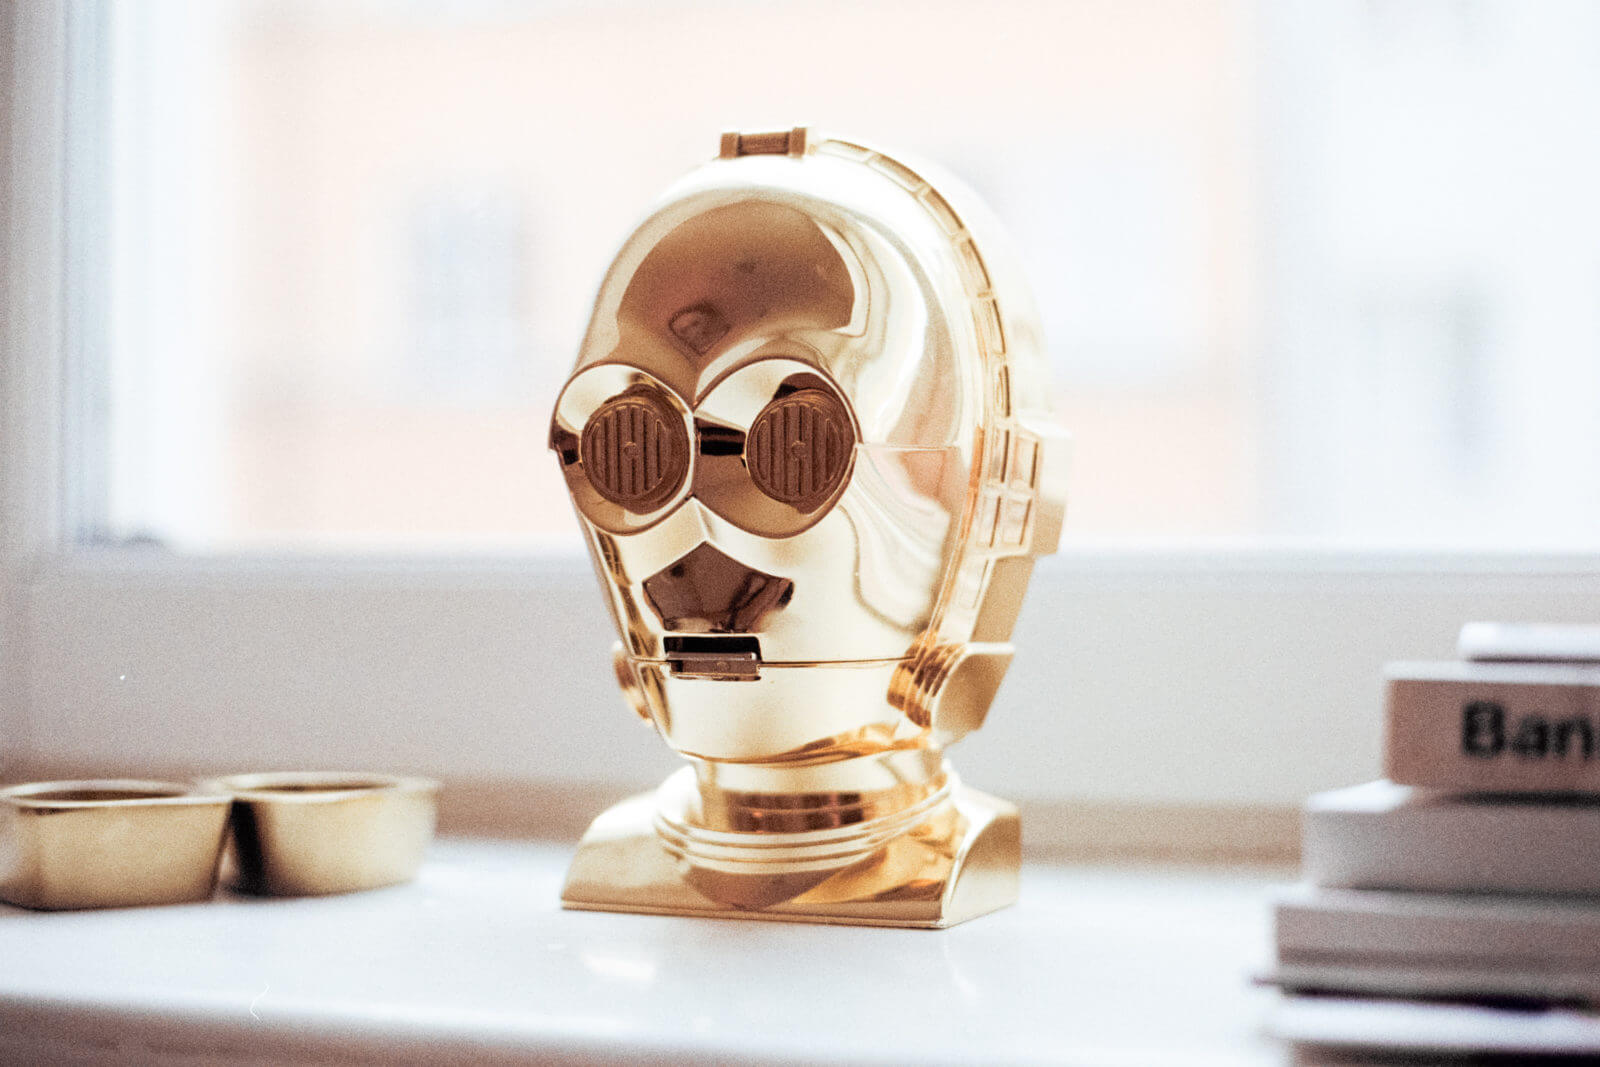 C-3PO or Threepio from Star Wars - Photo by jens johnsson